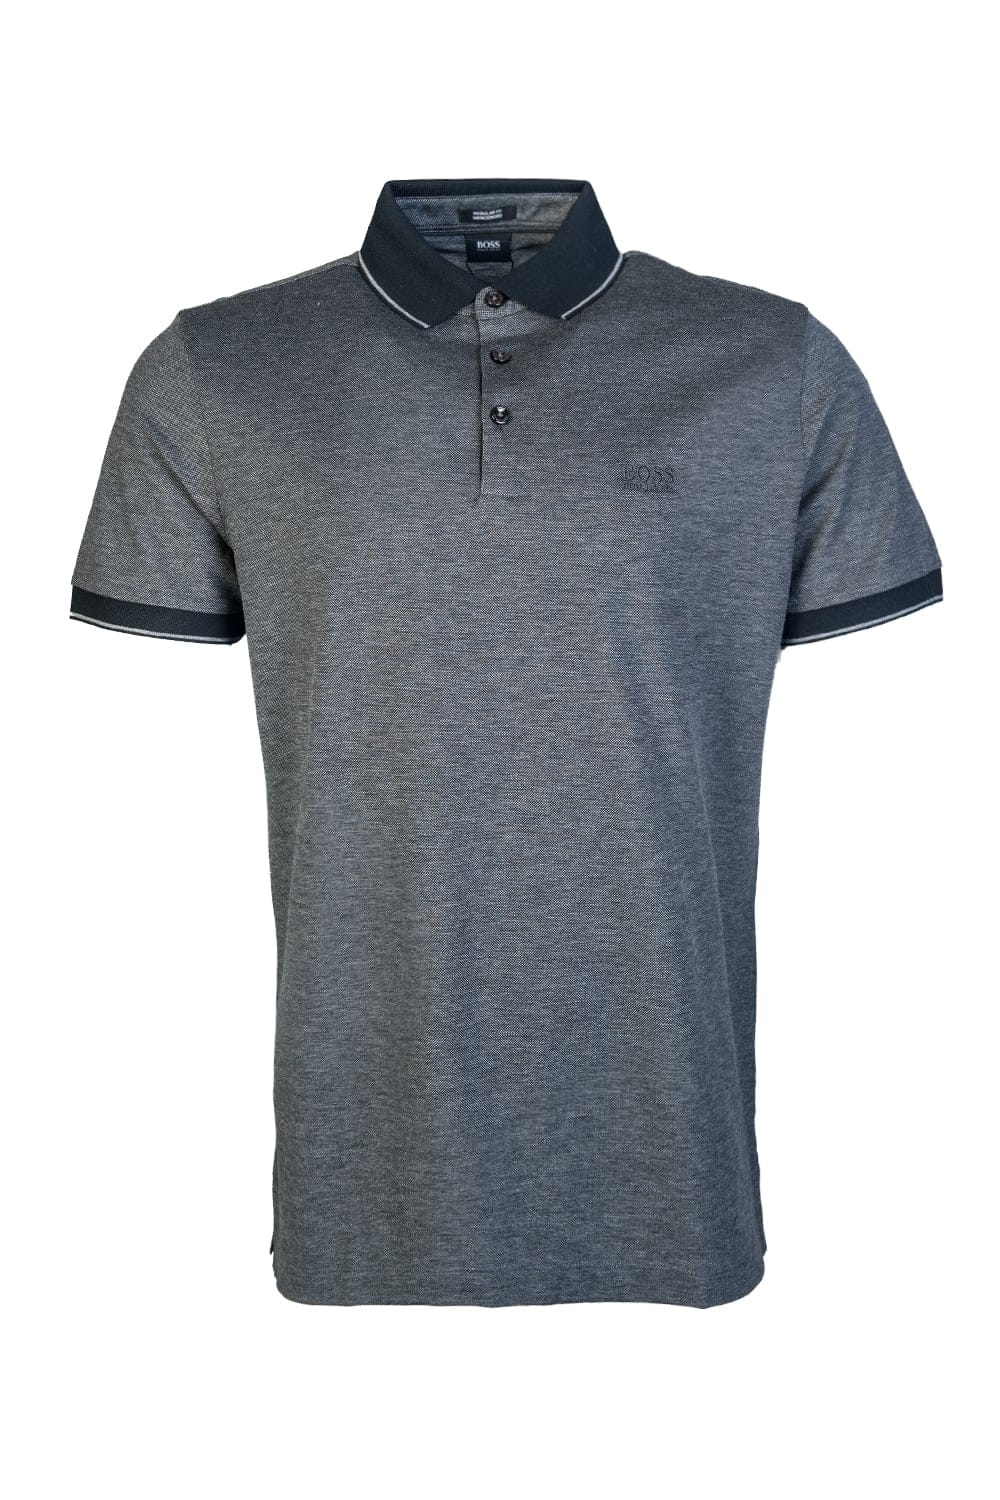 567e60e17 HUGO BOSS Polo Shirt PROUT 01 50308258